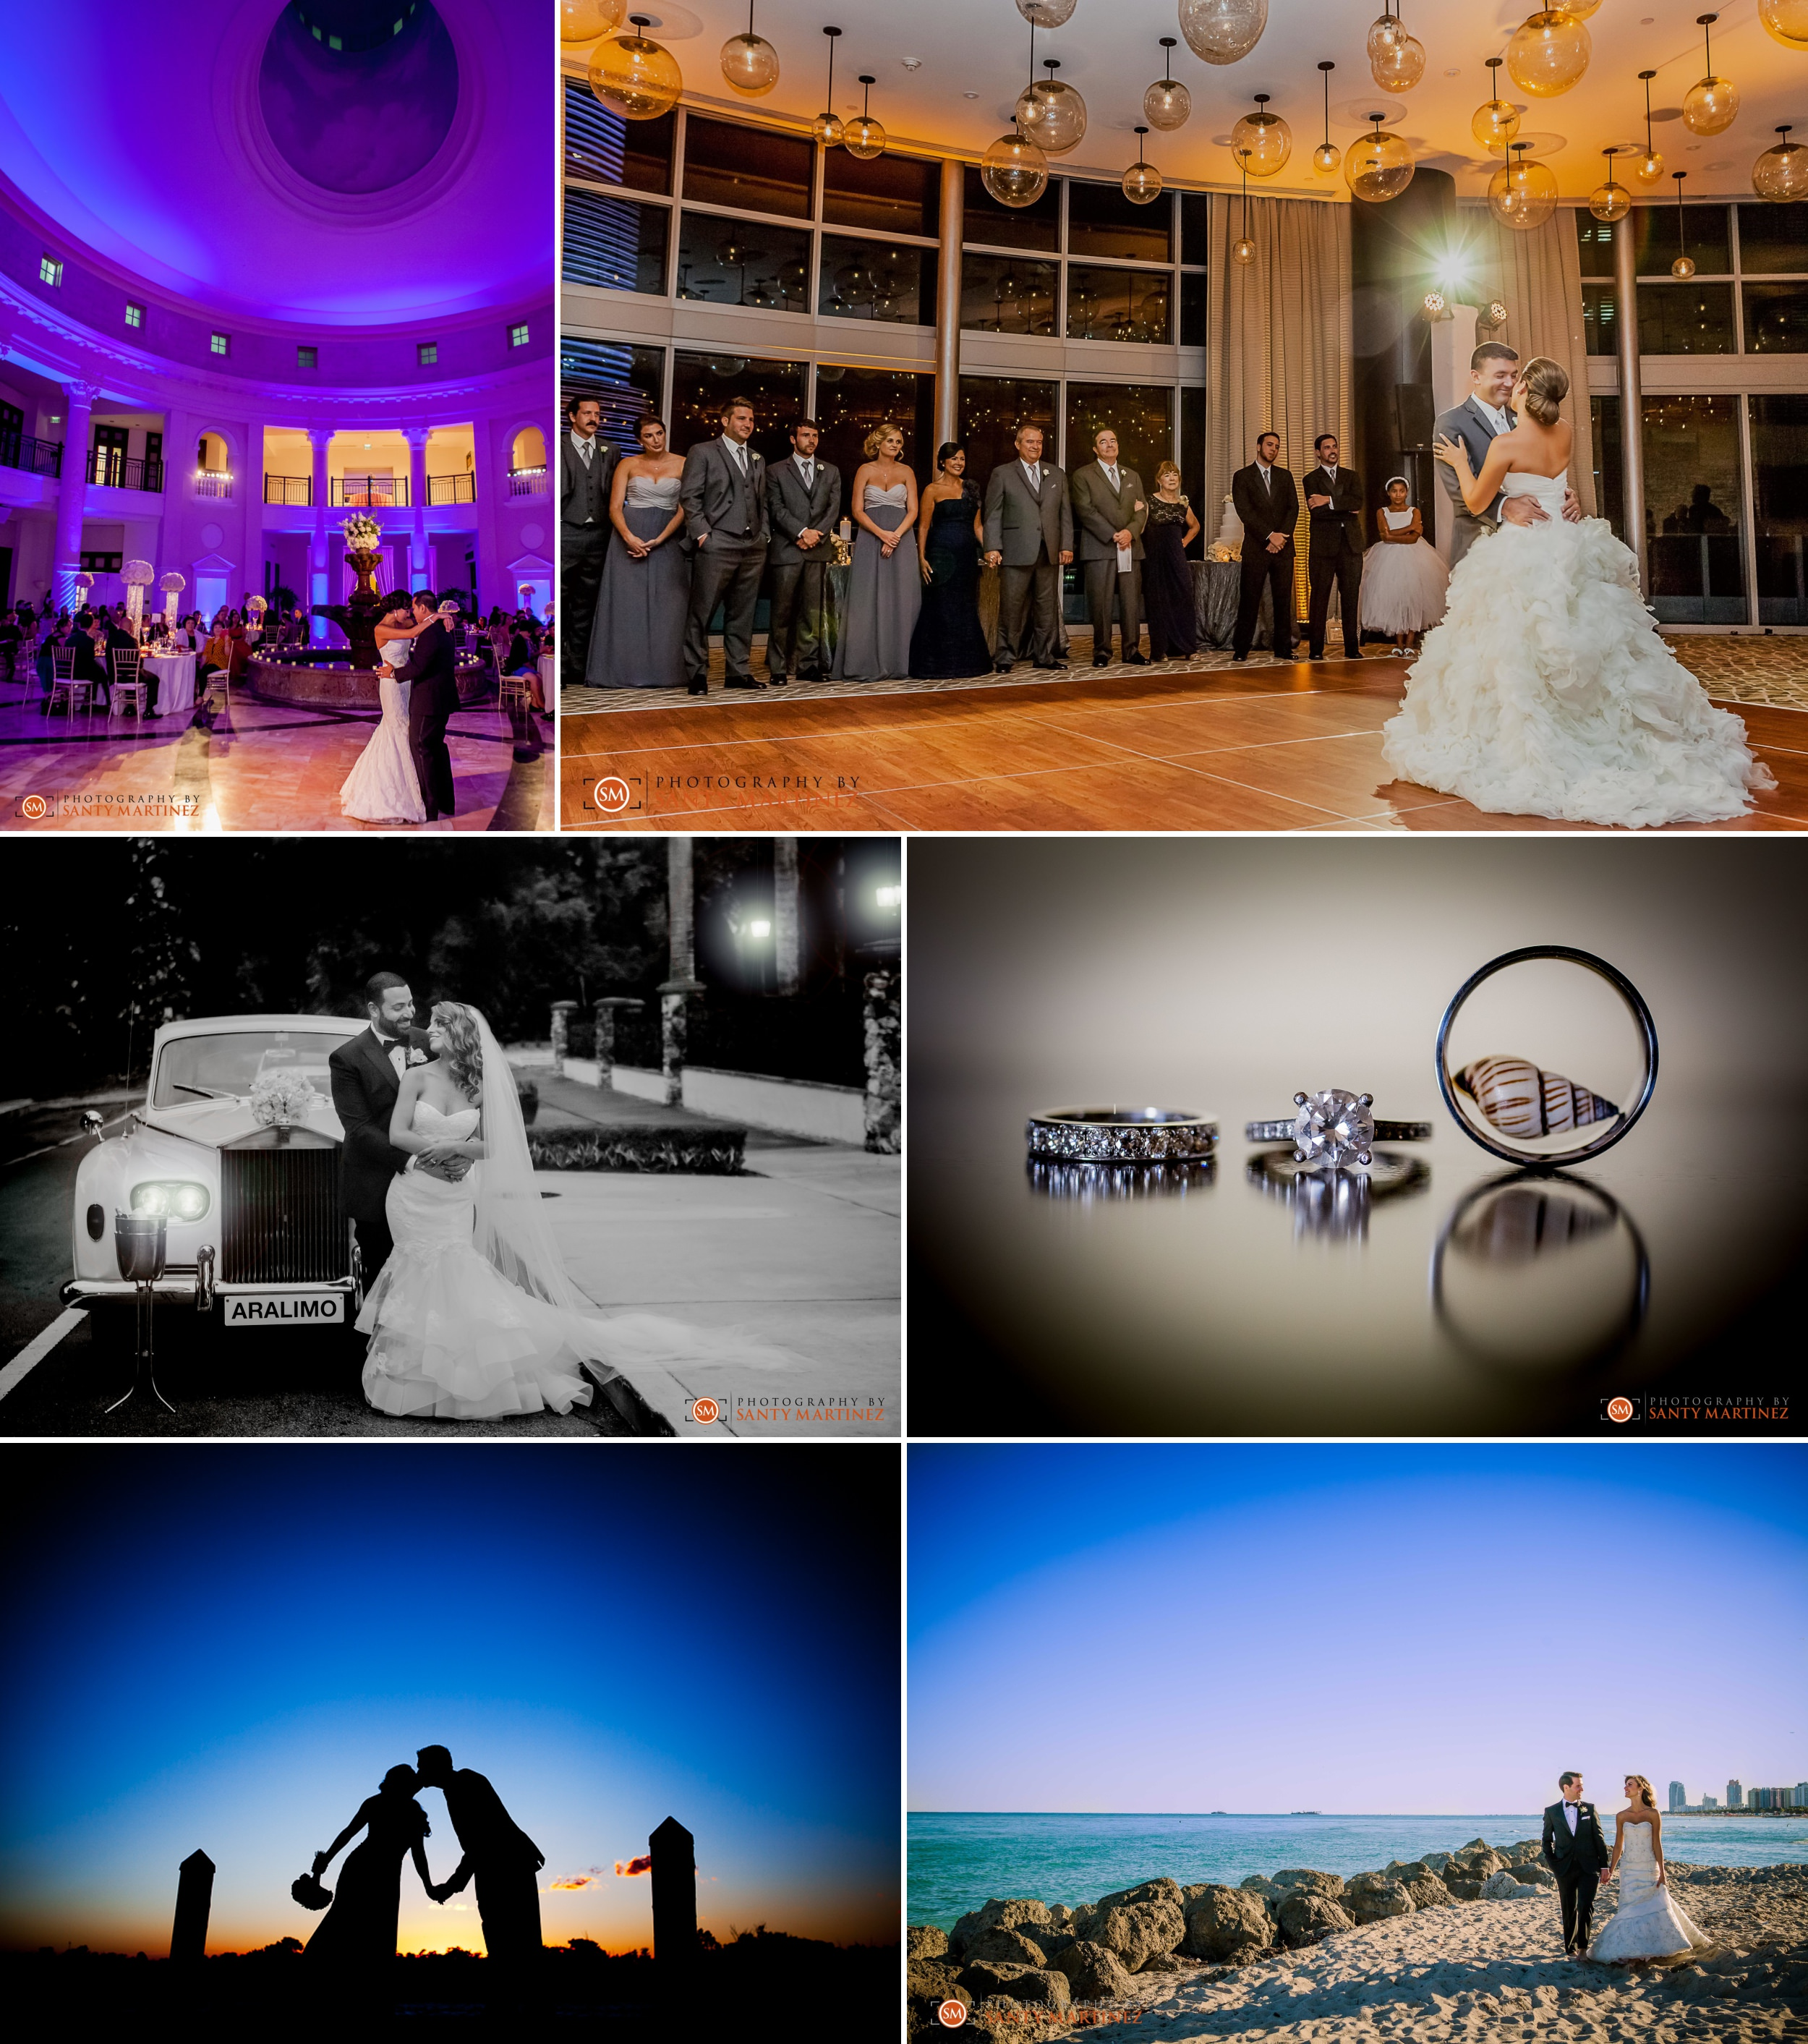 Santy Martinez - Photography - Miami Wedding Photographers 13.jpg